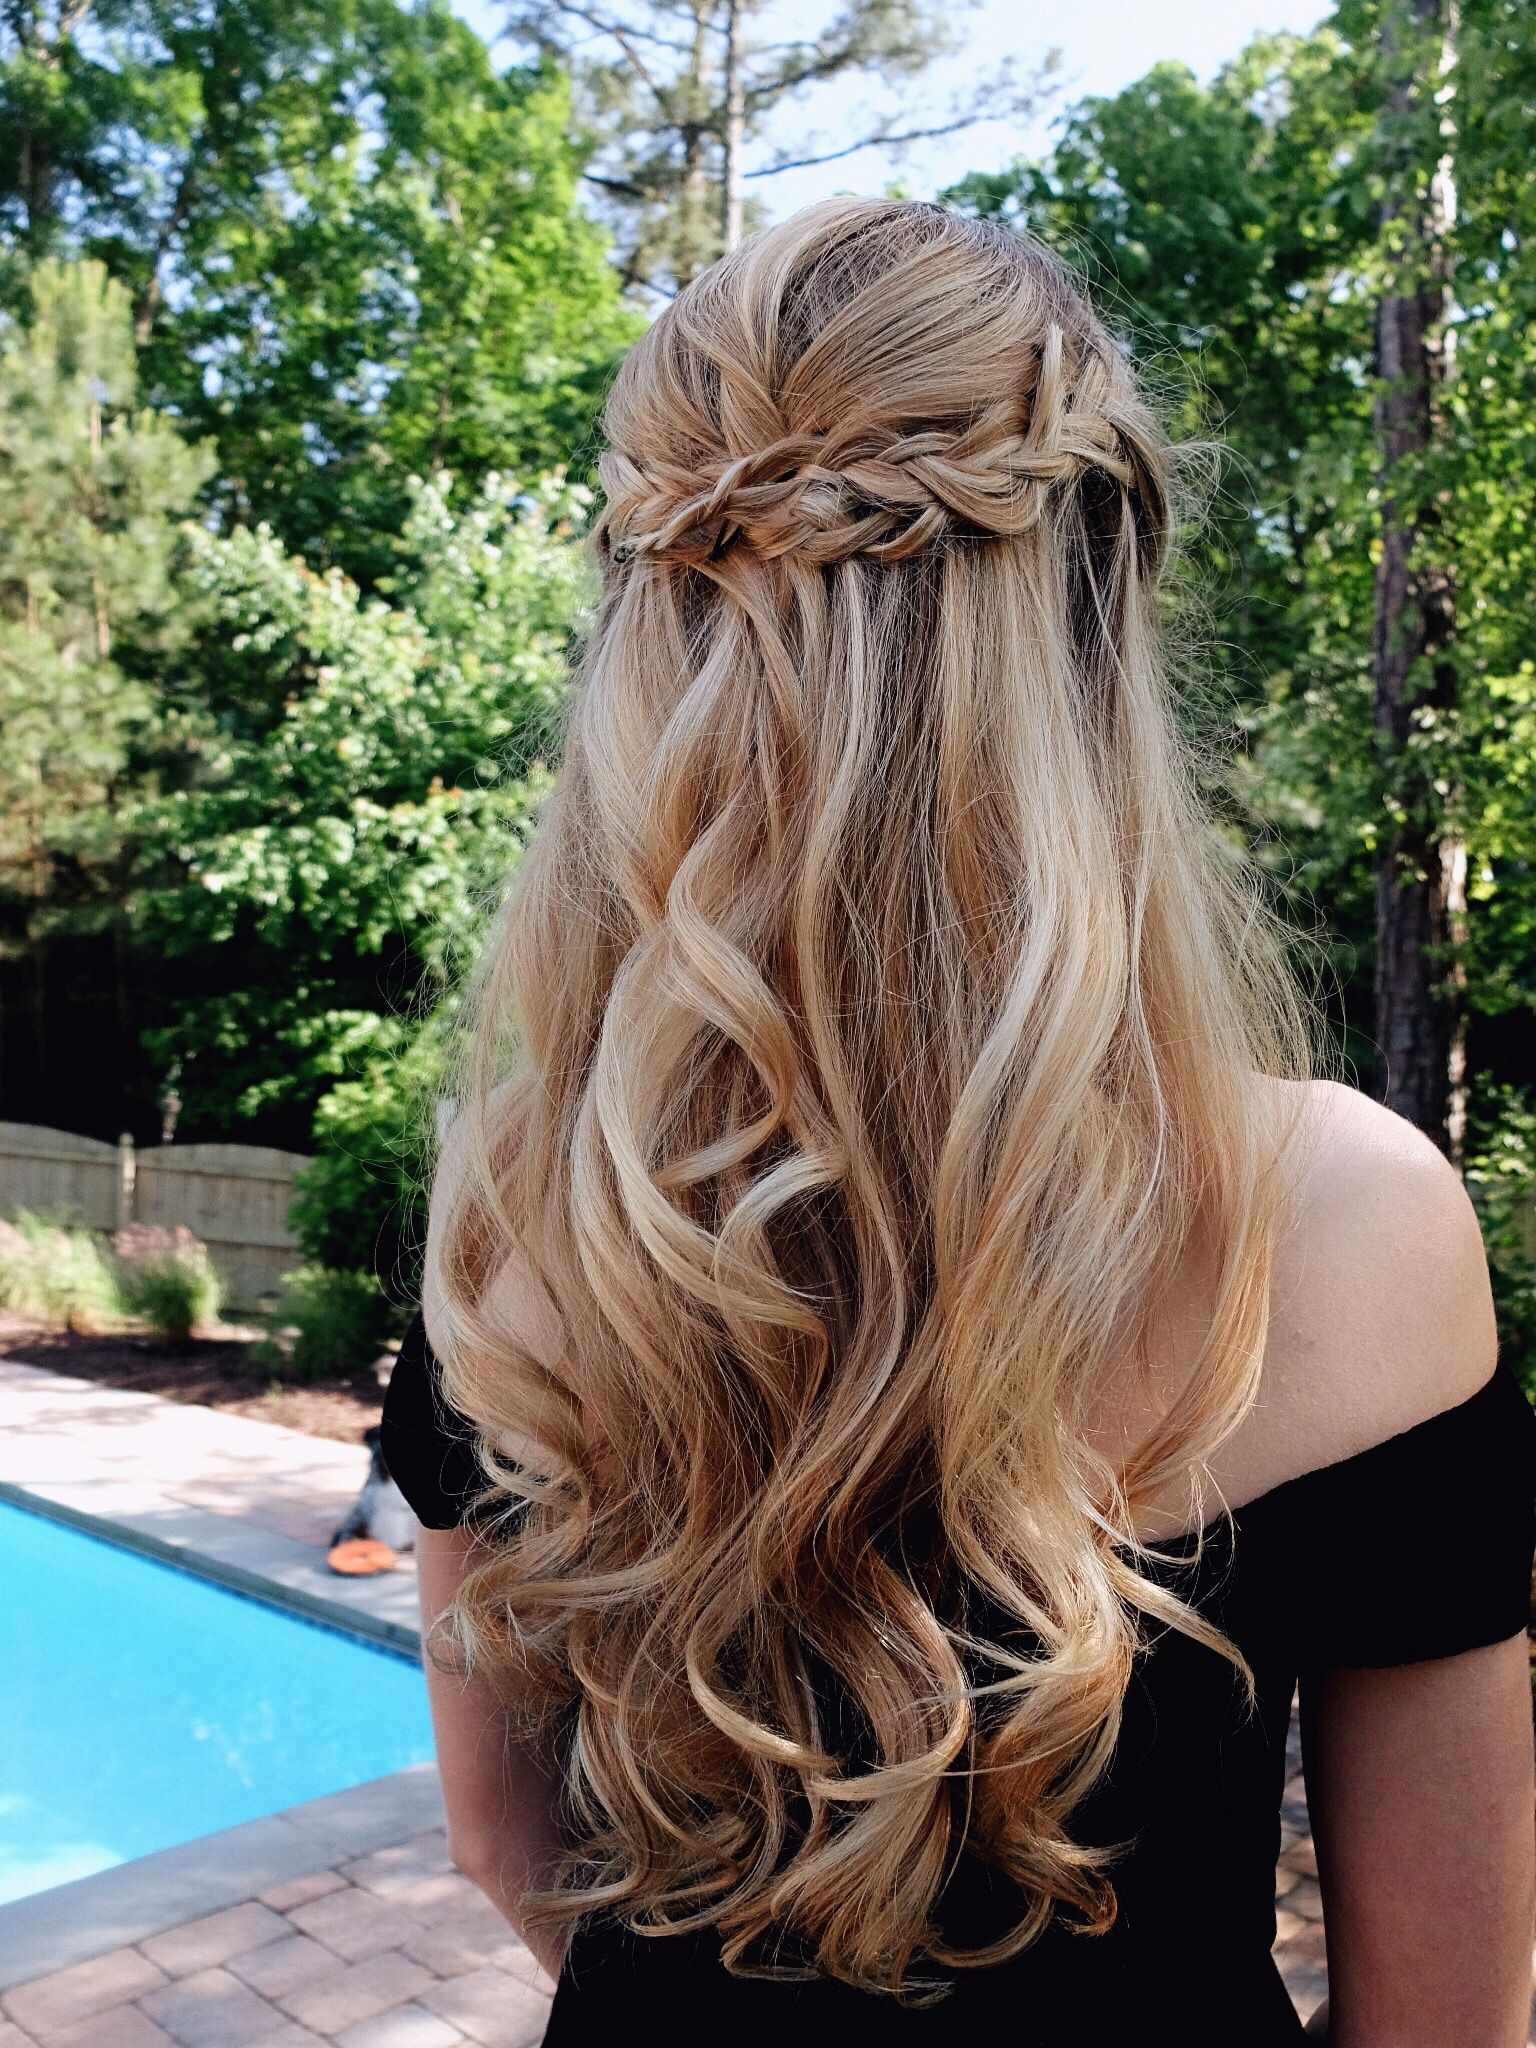 Beautiful Prom Hair Prom Promhair Braid Curls Wedding Haircut Homecoming Hairstyles Curly Hair Styles